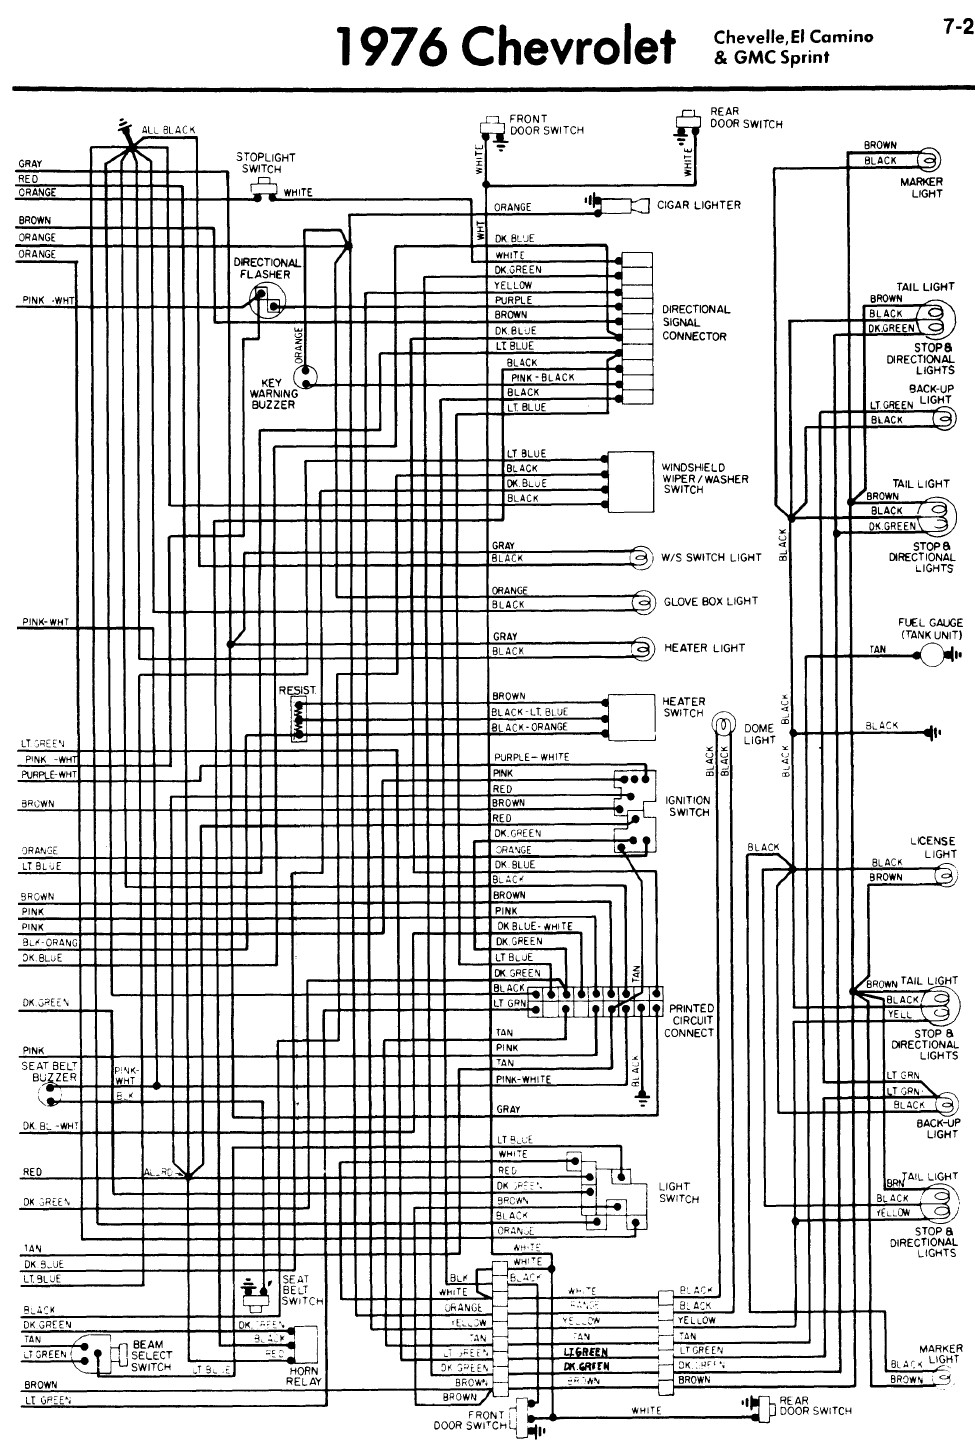 Blower Fan Wiring Diagram For Chevy Heater Blower Fan Quit There Is No Power To The Dash